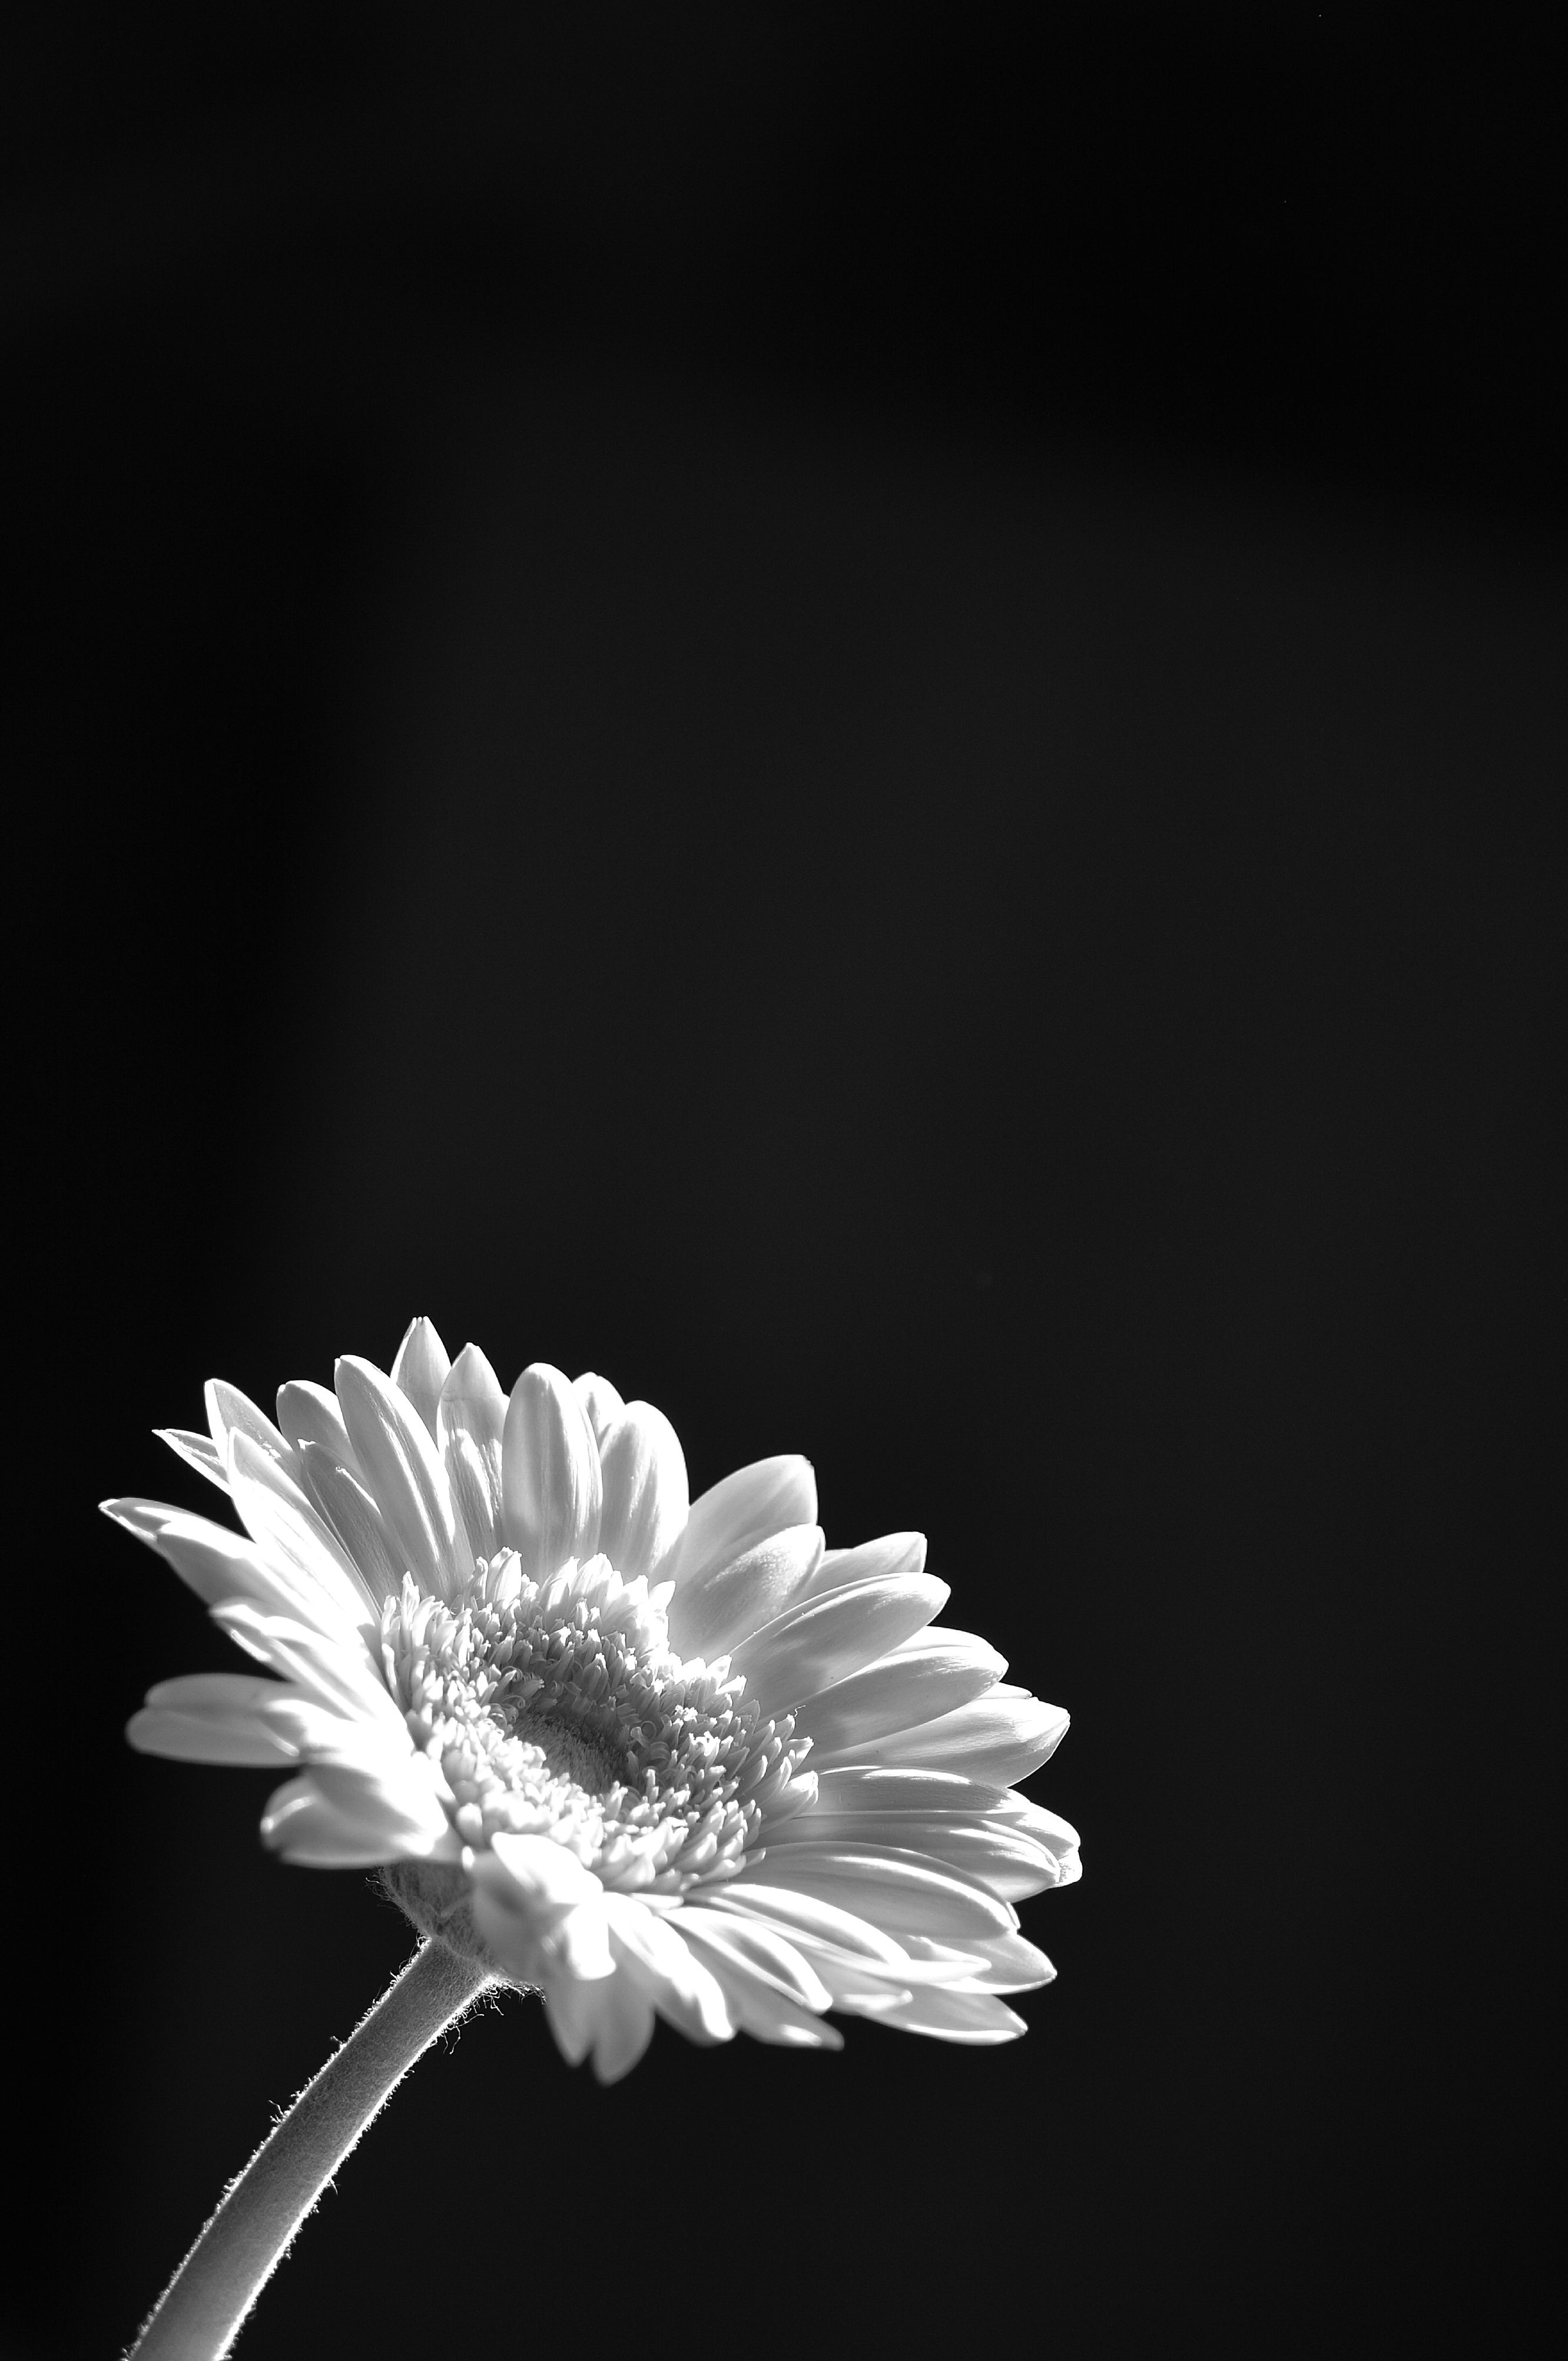 Pin By Jude On Floral Pinterest Flowers Photography And Black